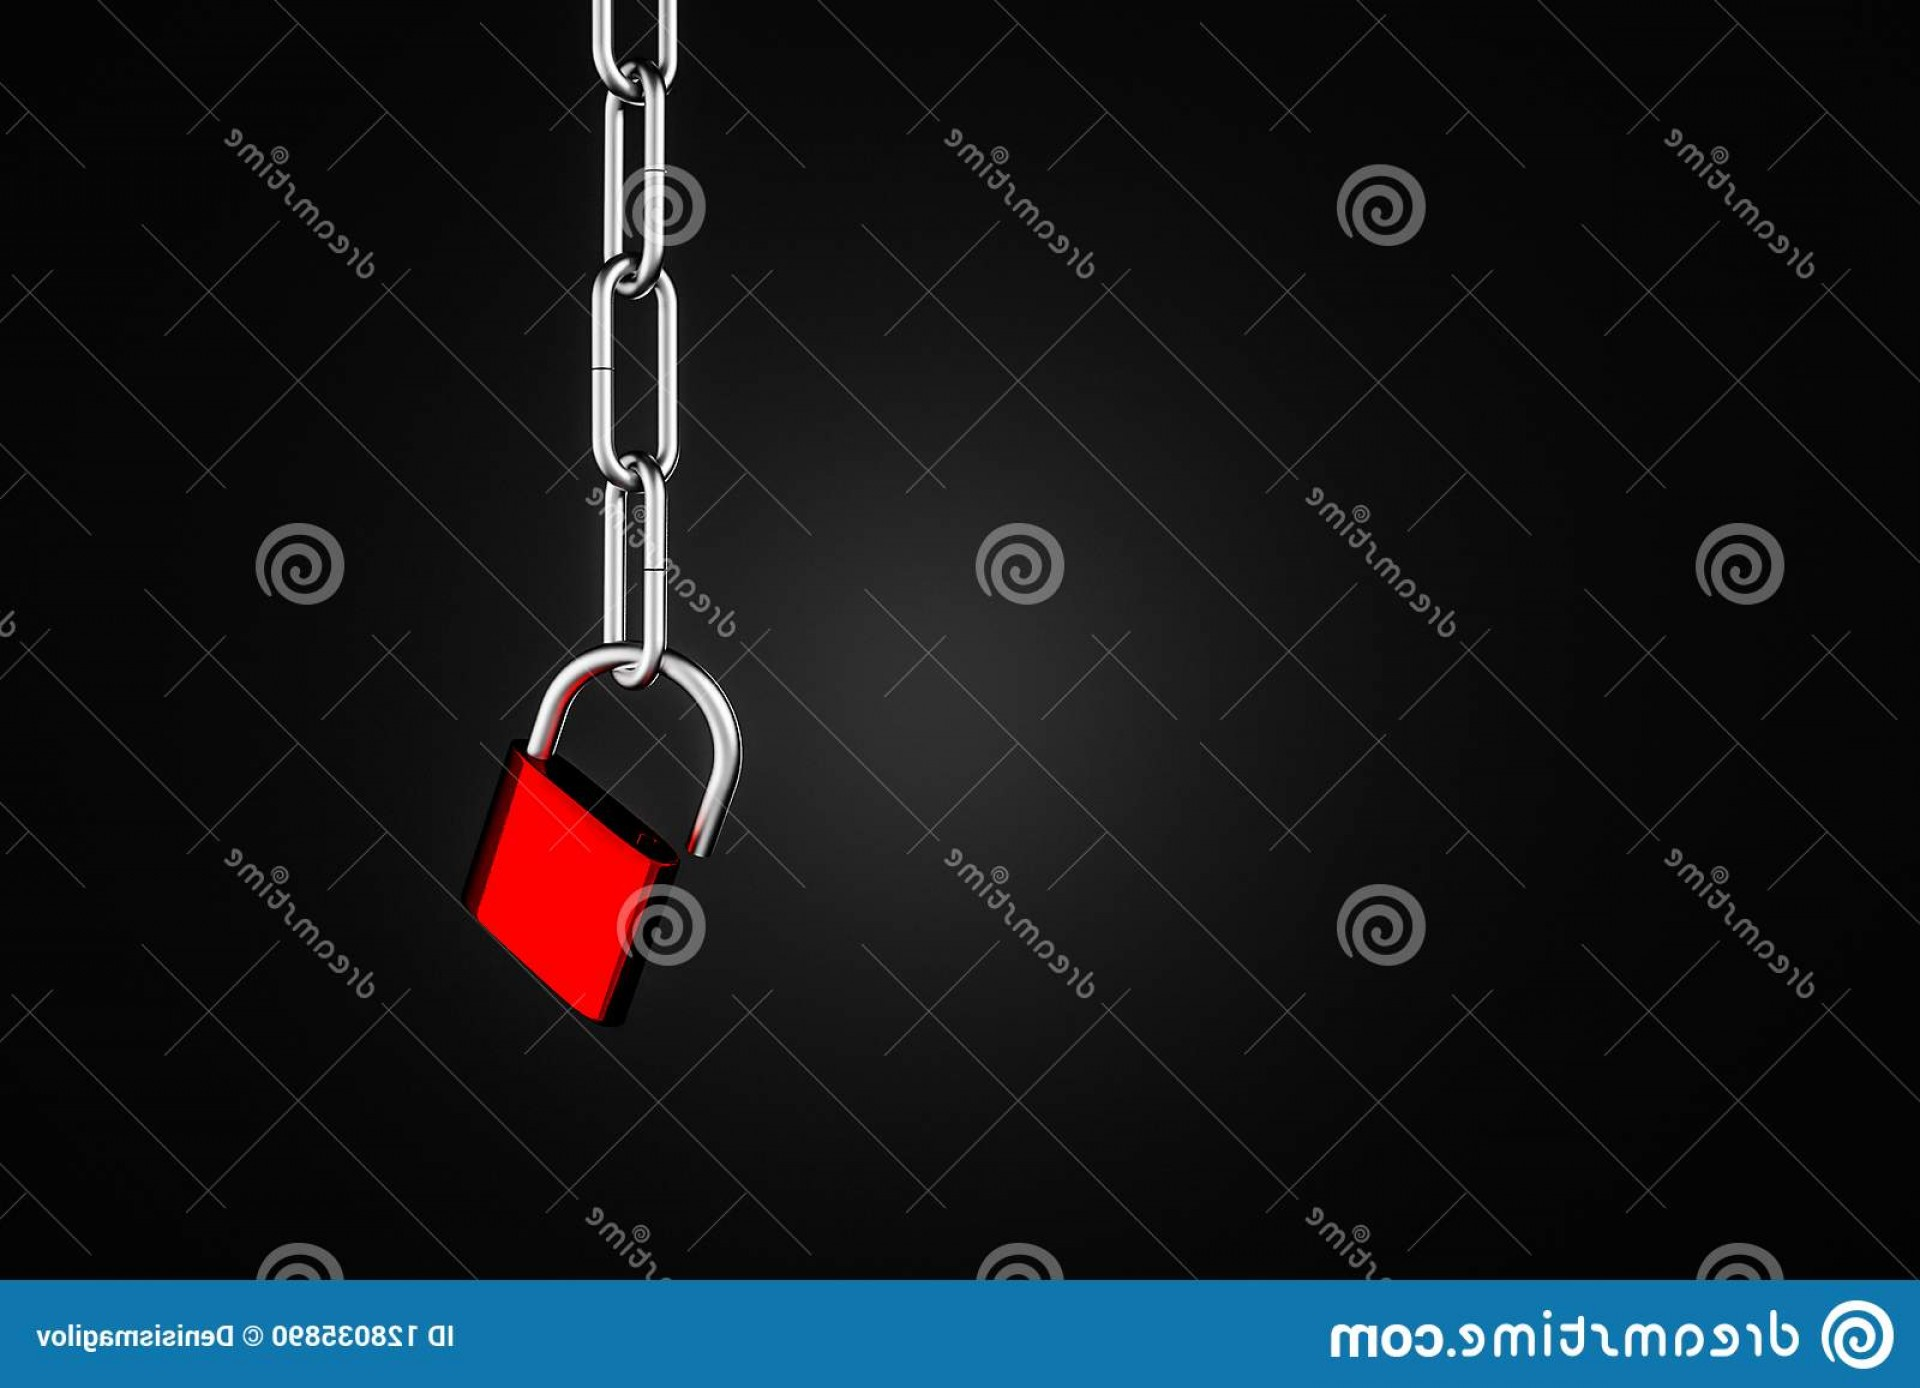 Chain And Lock Glove Vector: Open Red Padlock Steel Chains Mock Up Red Steel Open Padlock Hanging Steel Chain Over Black Background Concept Image